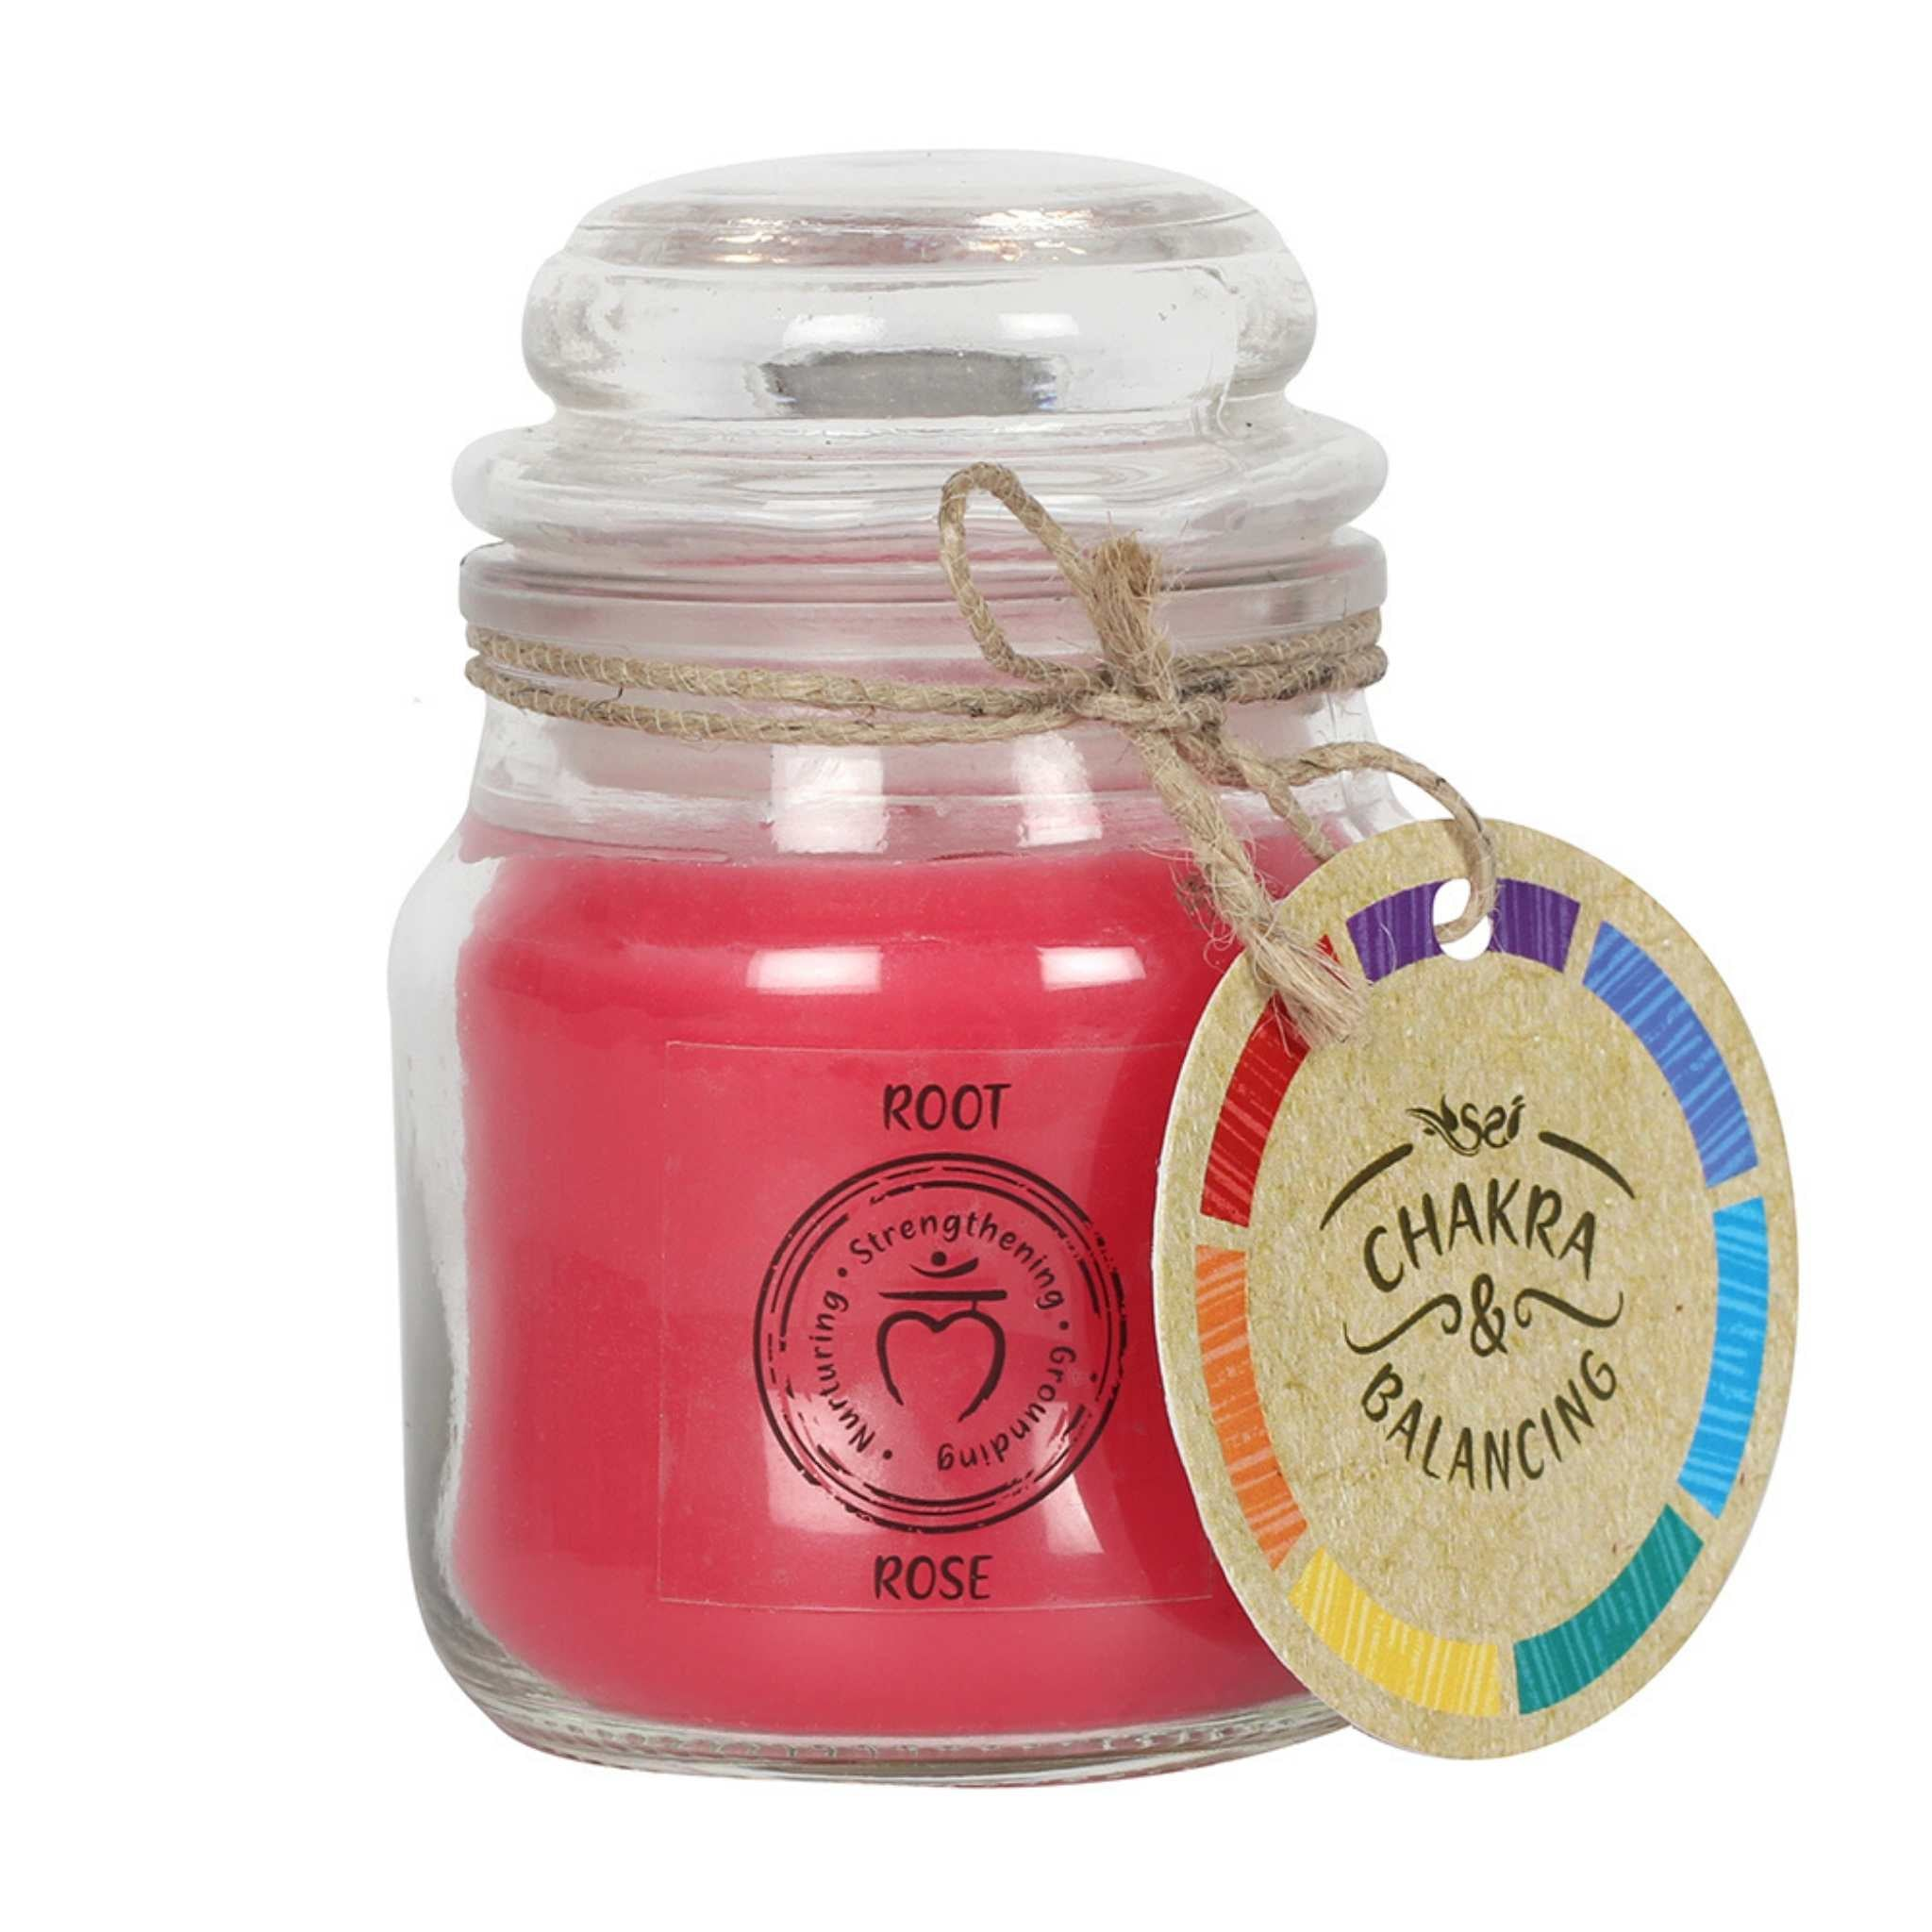 Balancing Chakra Candle in a min glass jar with stopper. Tied with a label that says Chakra Balancing. Candle is red with a label on the jar that says Root - Rose